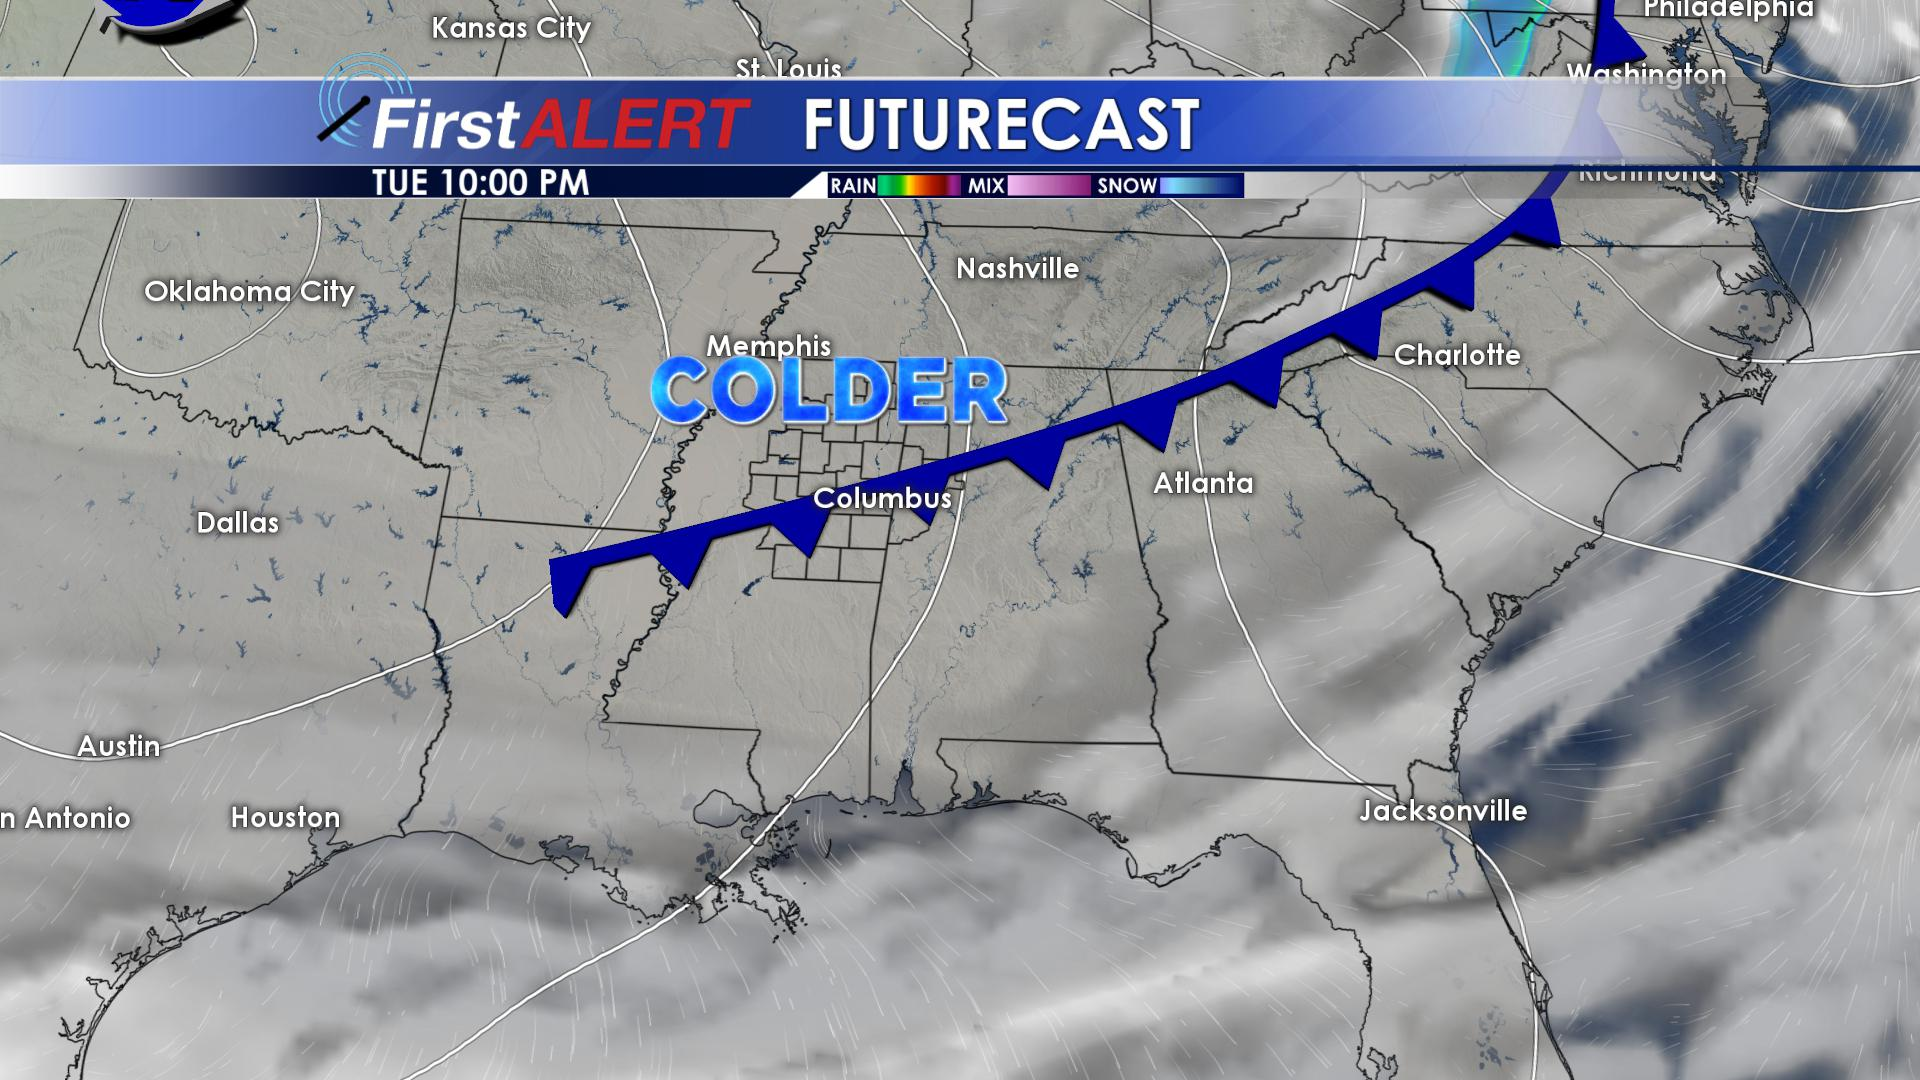 Tuesday Night's Cold Front